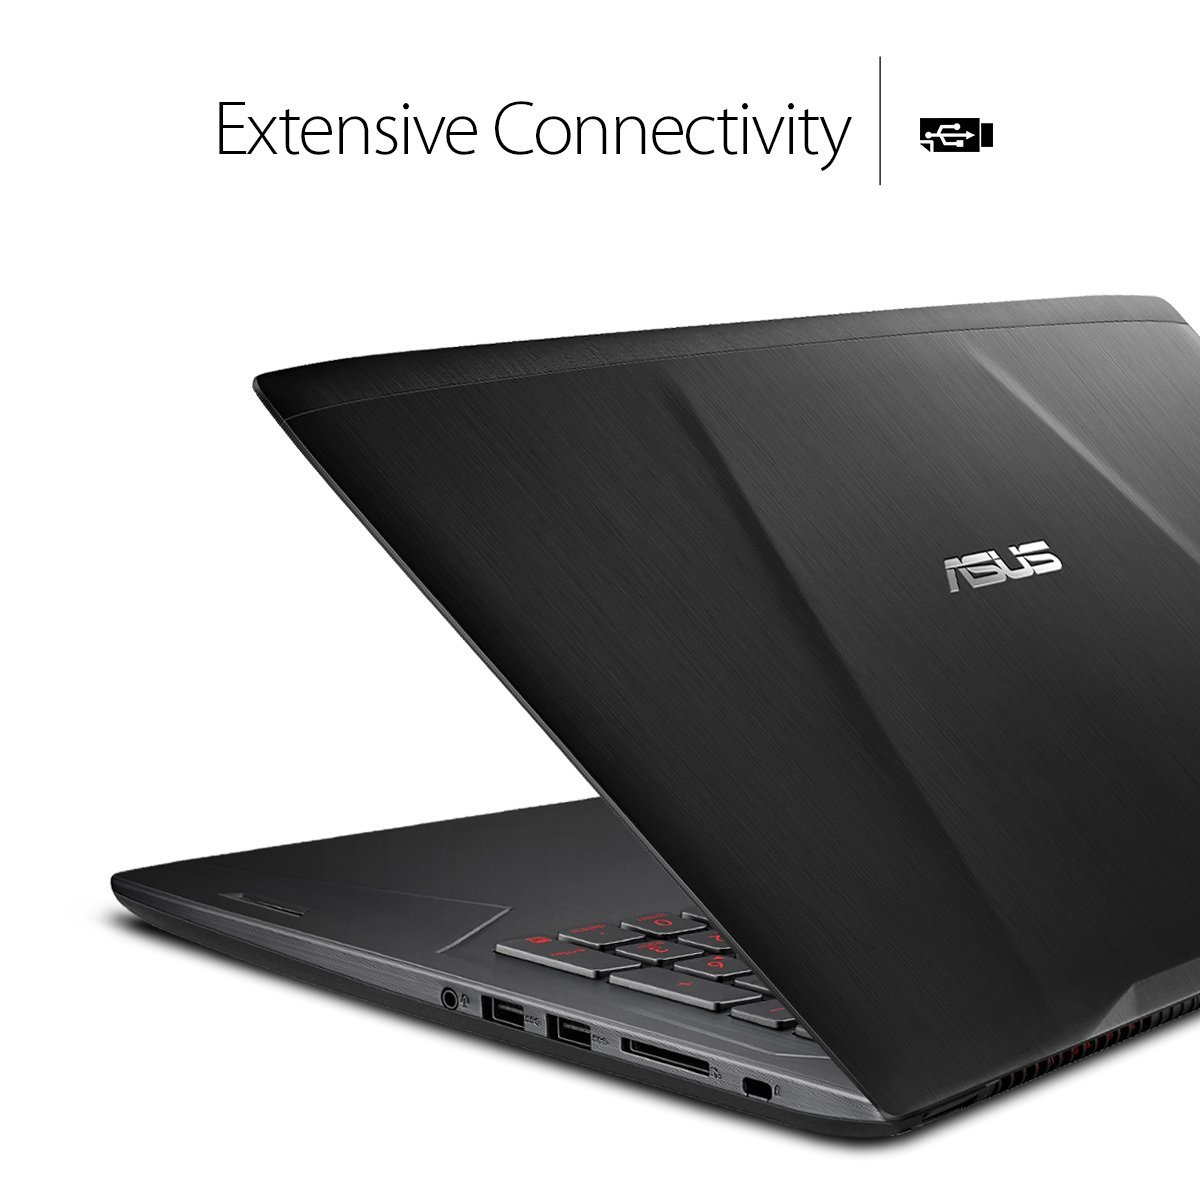 Amazon.com: ASUS Gaming Thin and Light Laptop, 15.6-inch Full HD , Intel Core i7-7700HQ Processor, 16GB DDR4 RAM, 128GB SSD + 1TB HDD, GeForce GTX 1060 3GB, ...